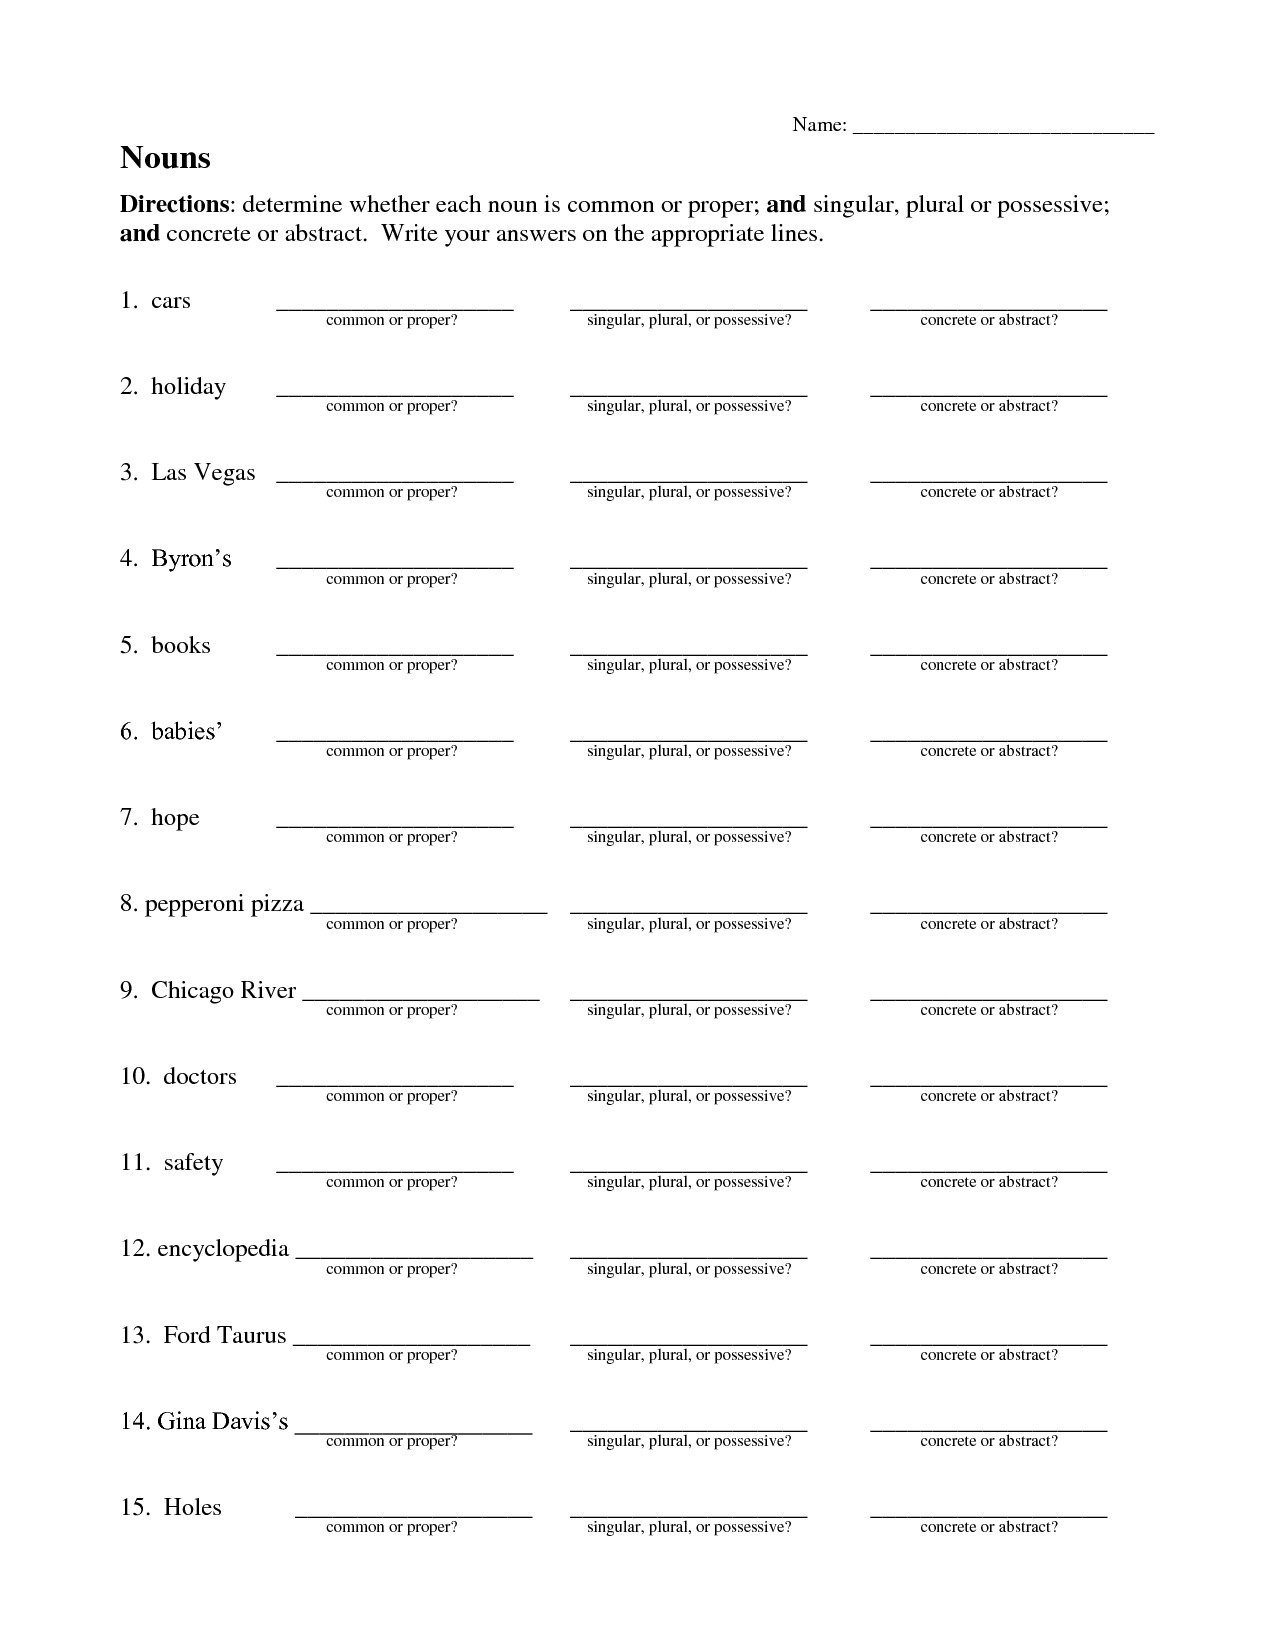 Plural Nouns Worksheet With Answers